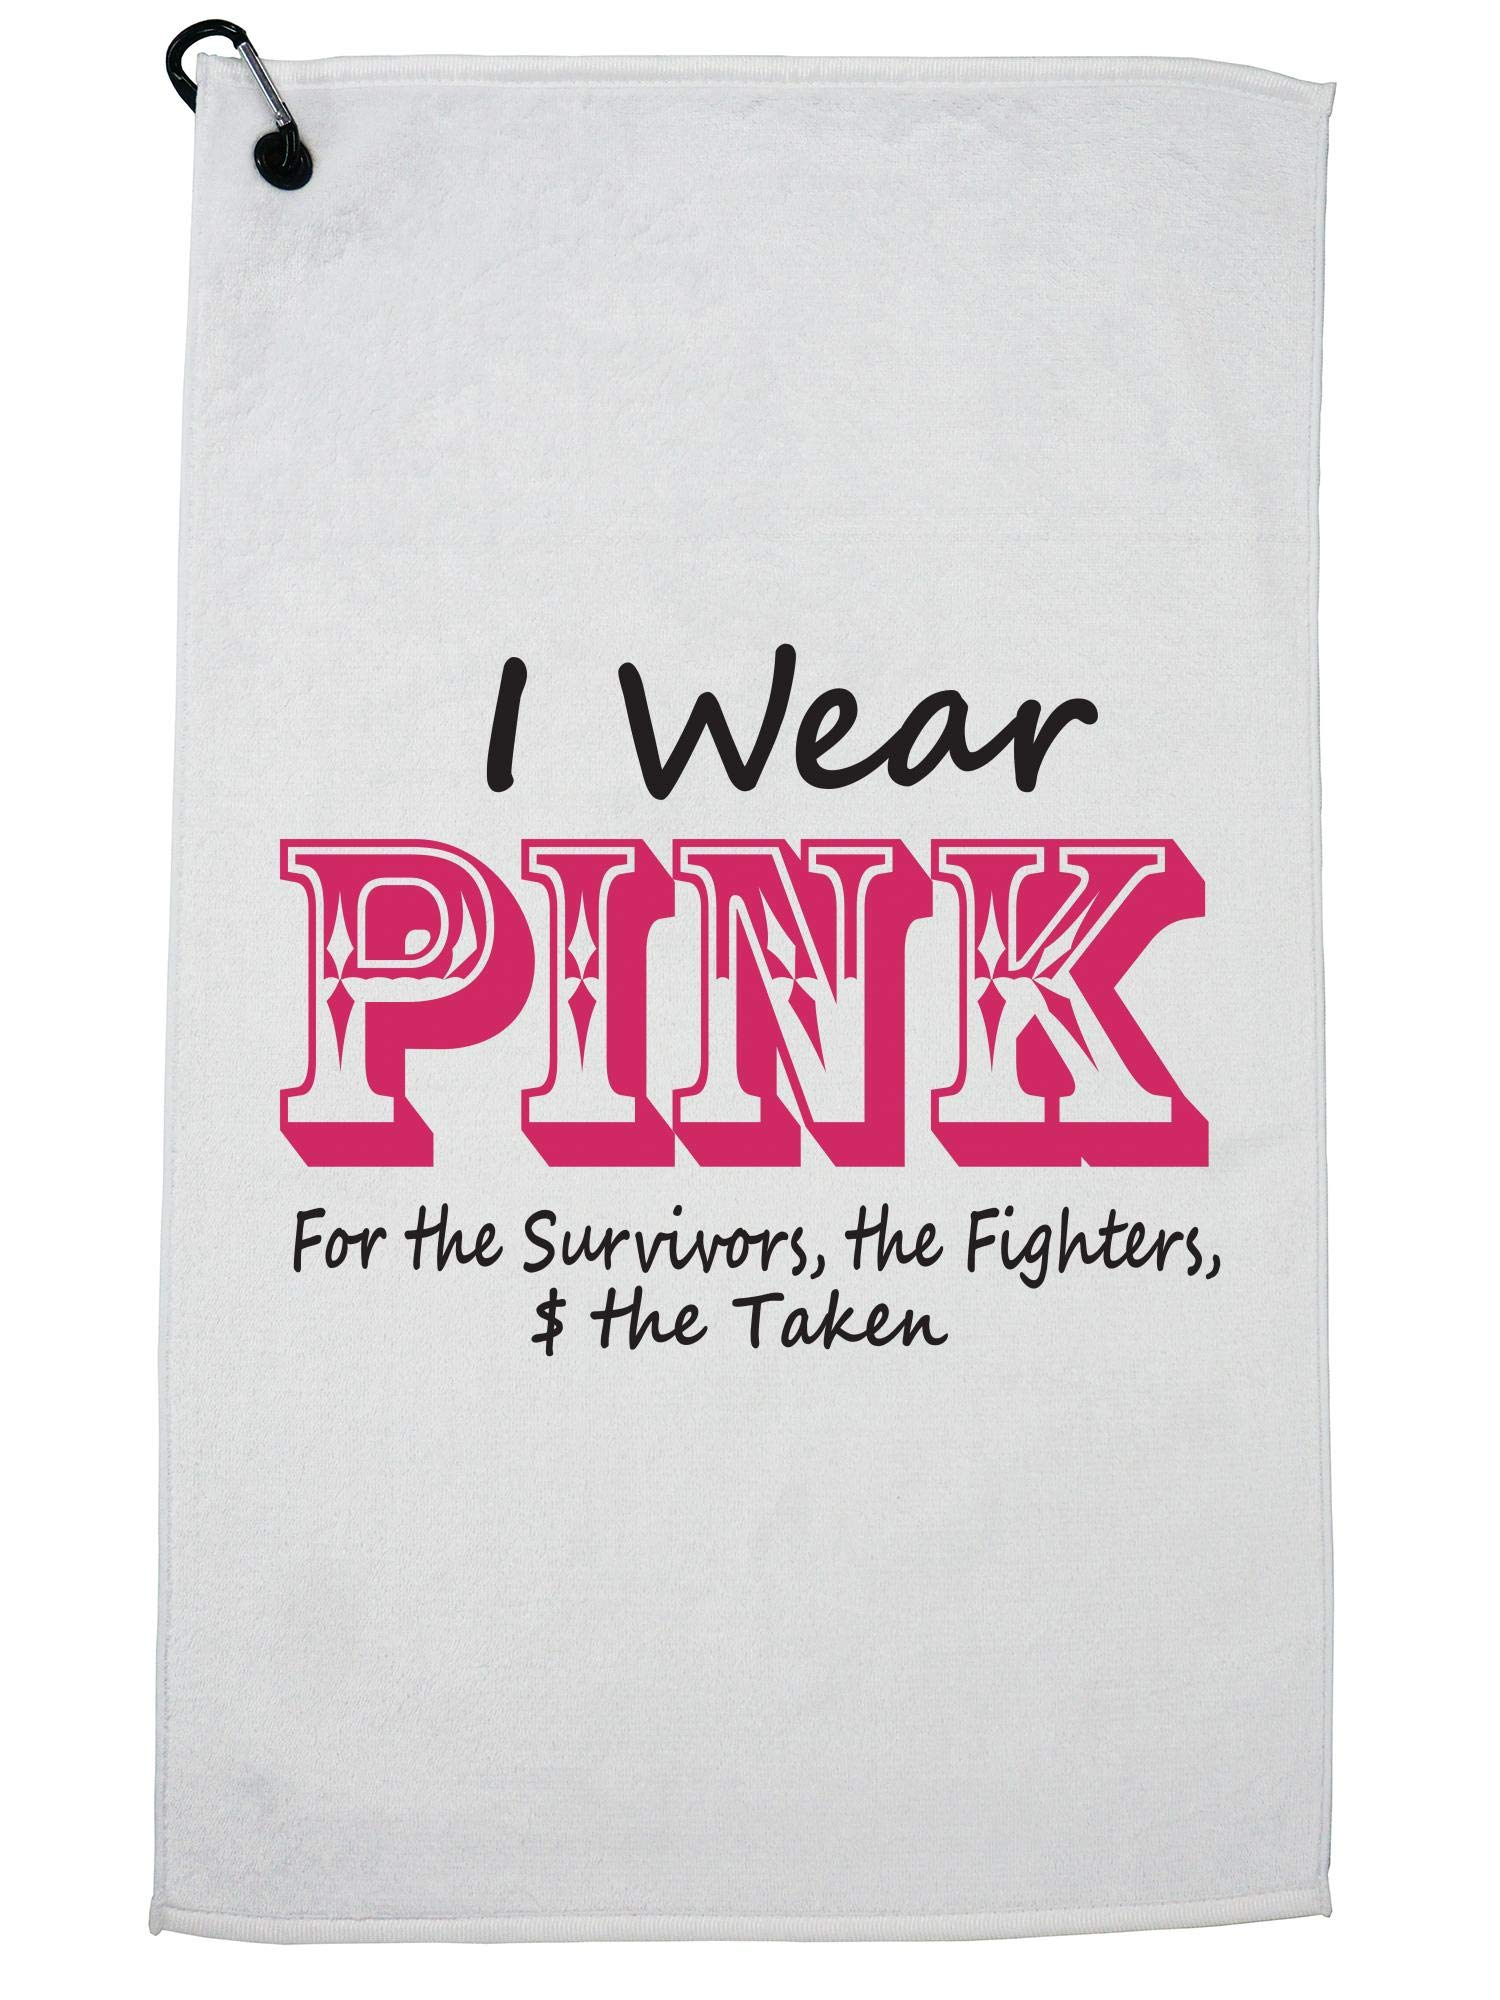 Hollywood Thread I Wear Pink Breast Cancer for Survivors Fighters Taken Golf Towel with Carabiner Clip